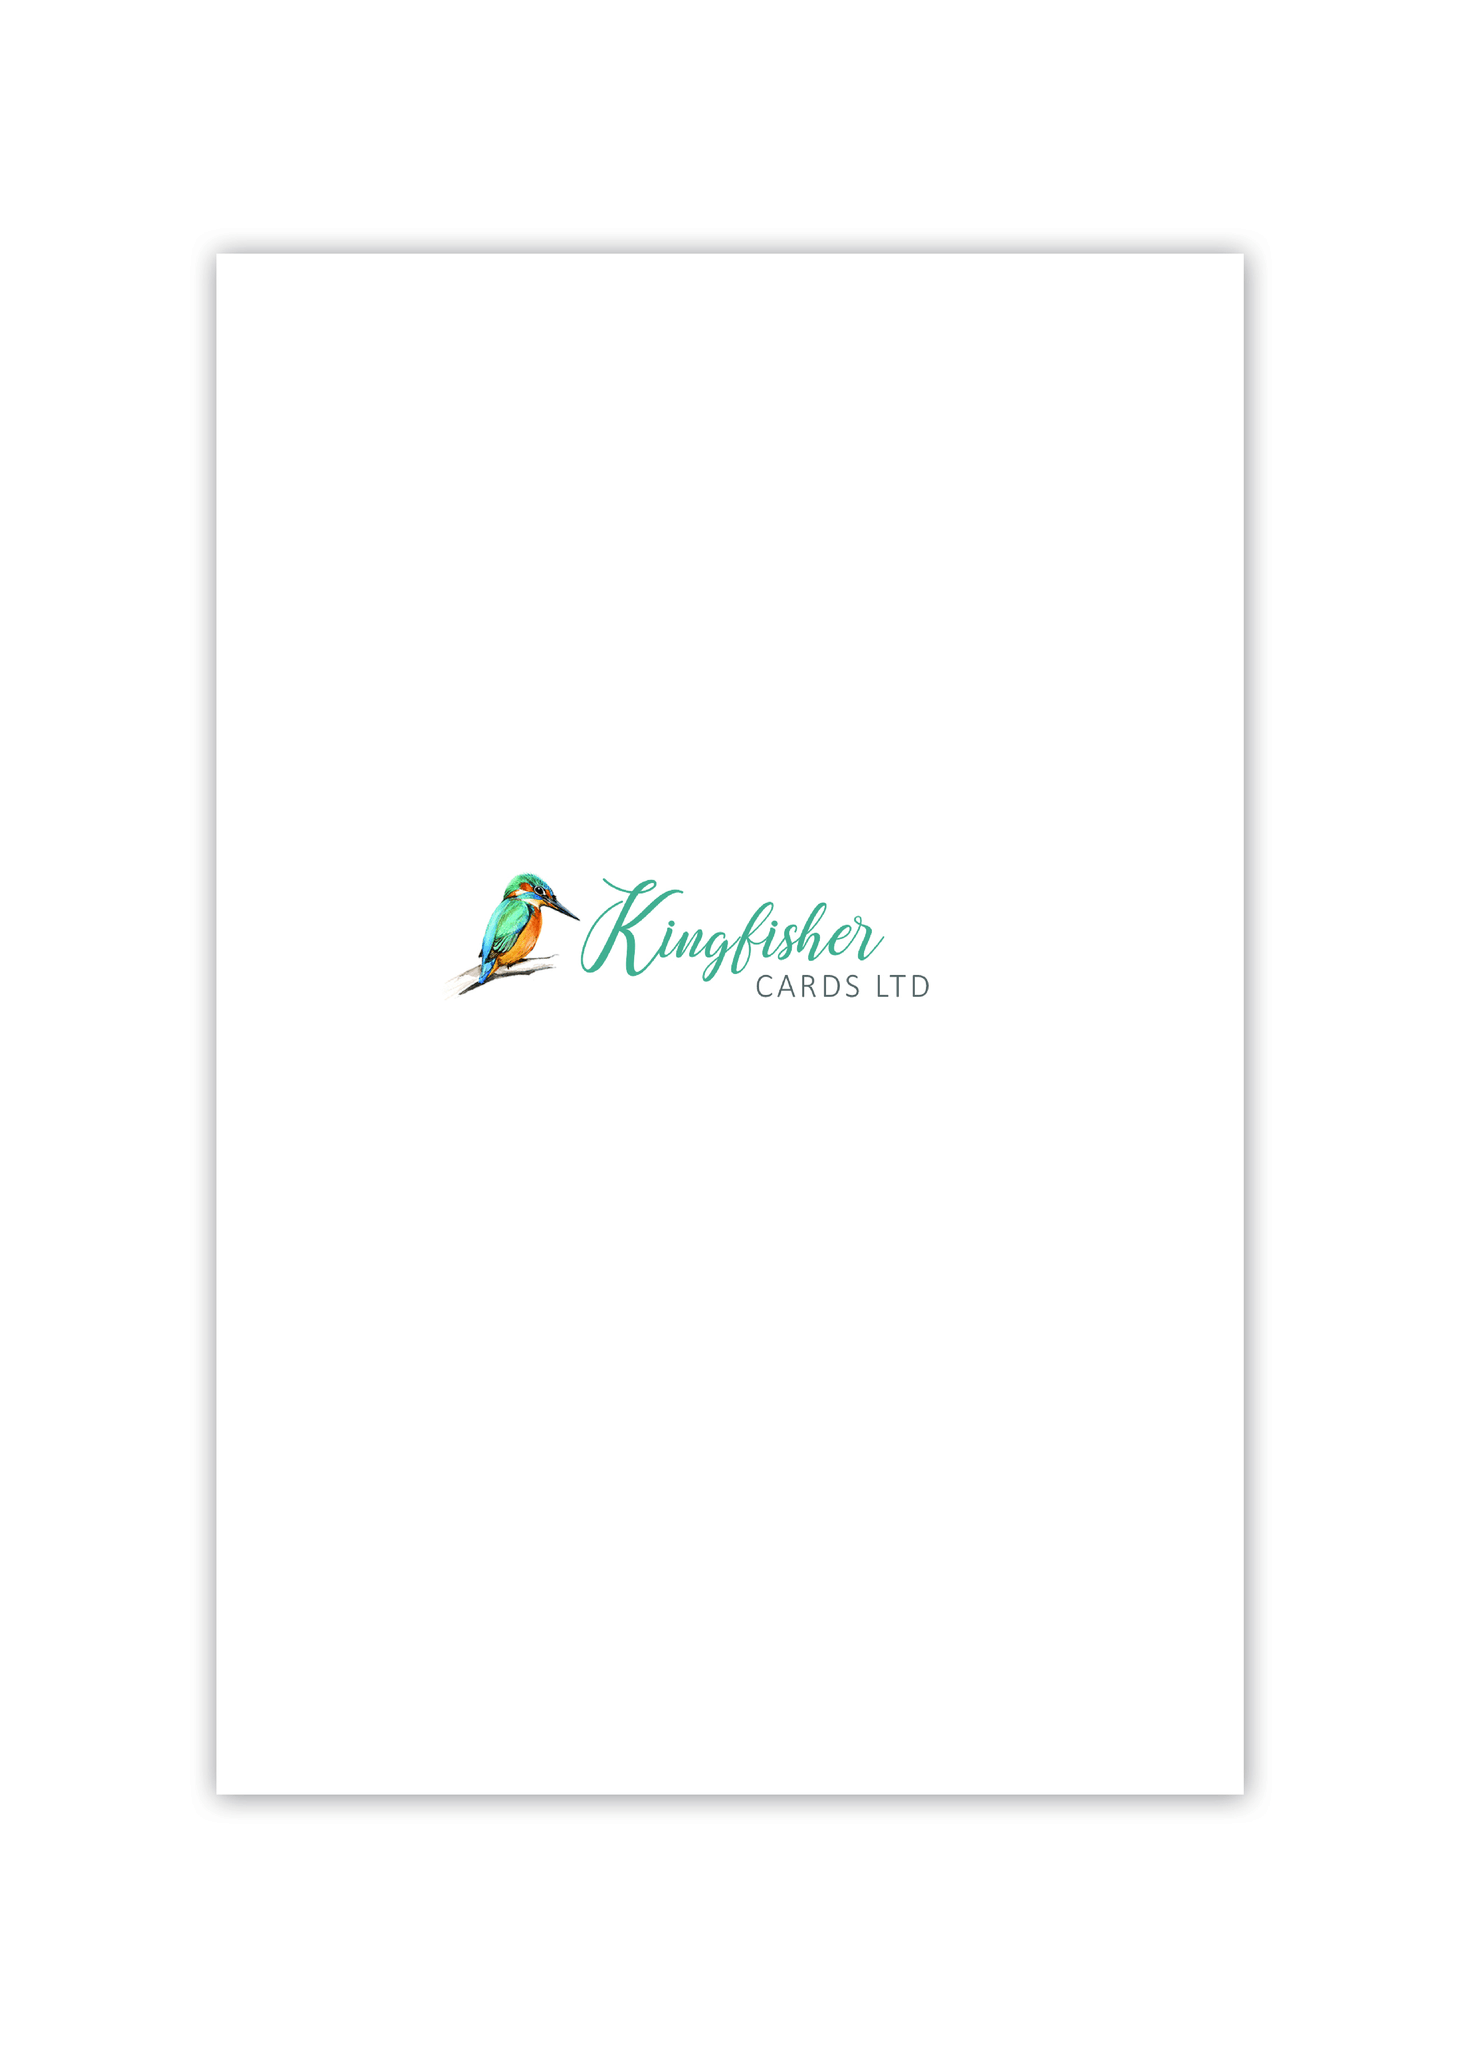 Kingfisher Cards Ltd